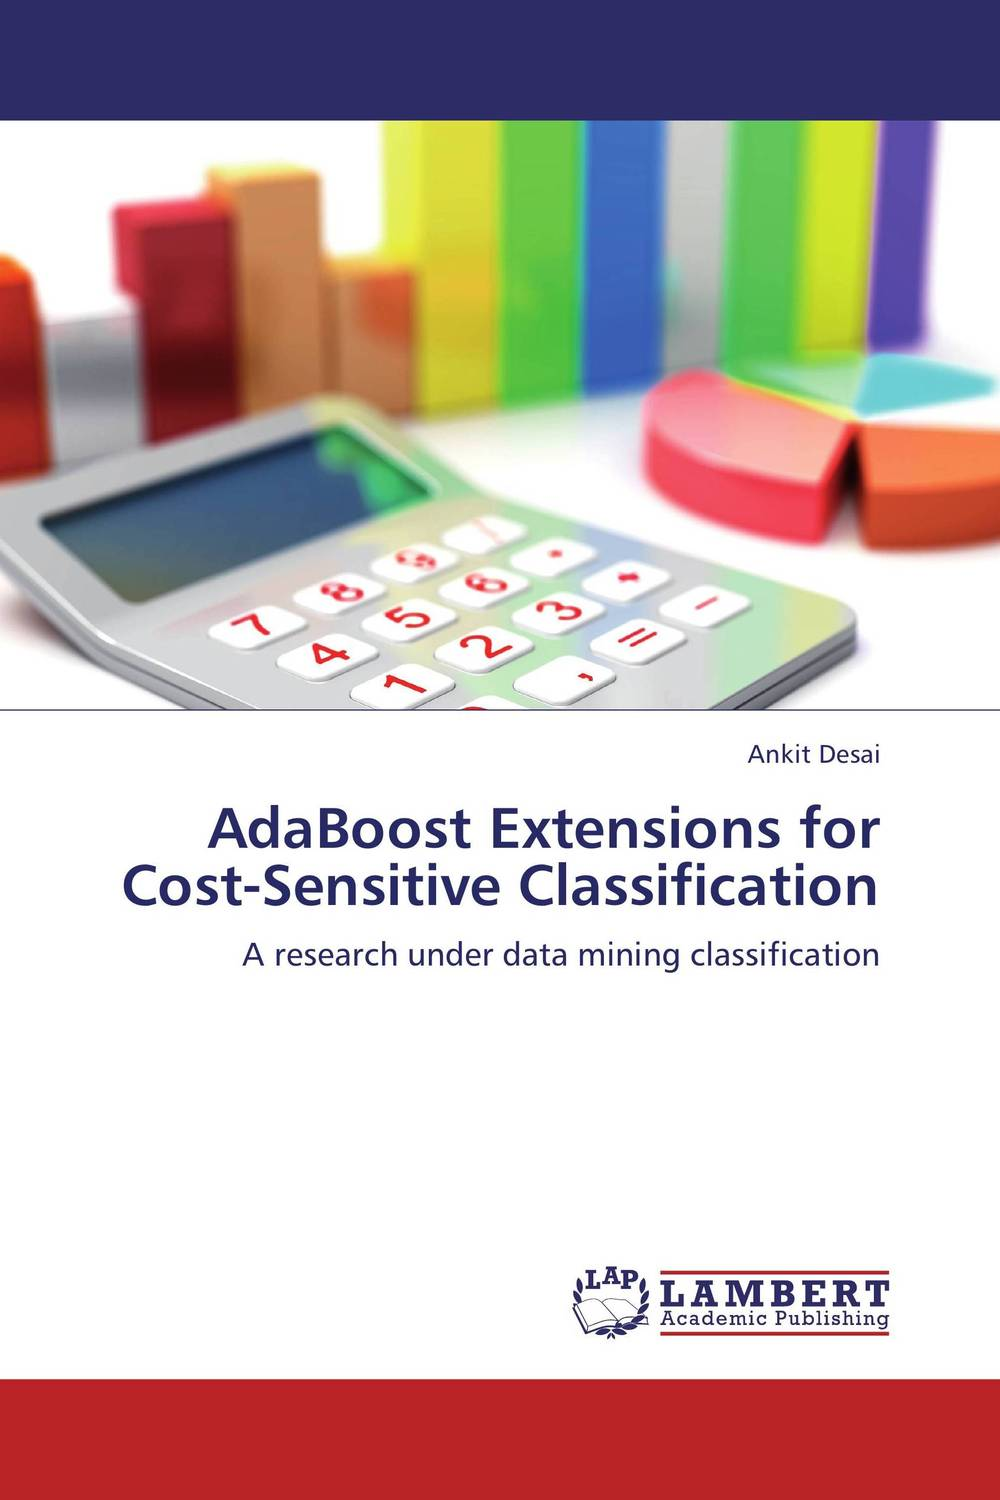 AdaBoost Extensions for Cost-Sensitive Classification use of classification algorithm under data mining for managing asthma